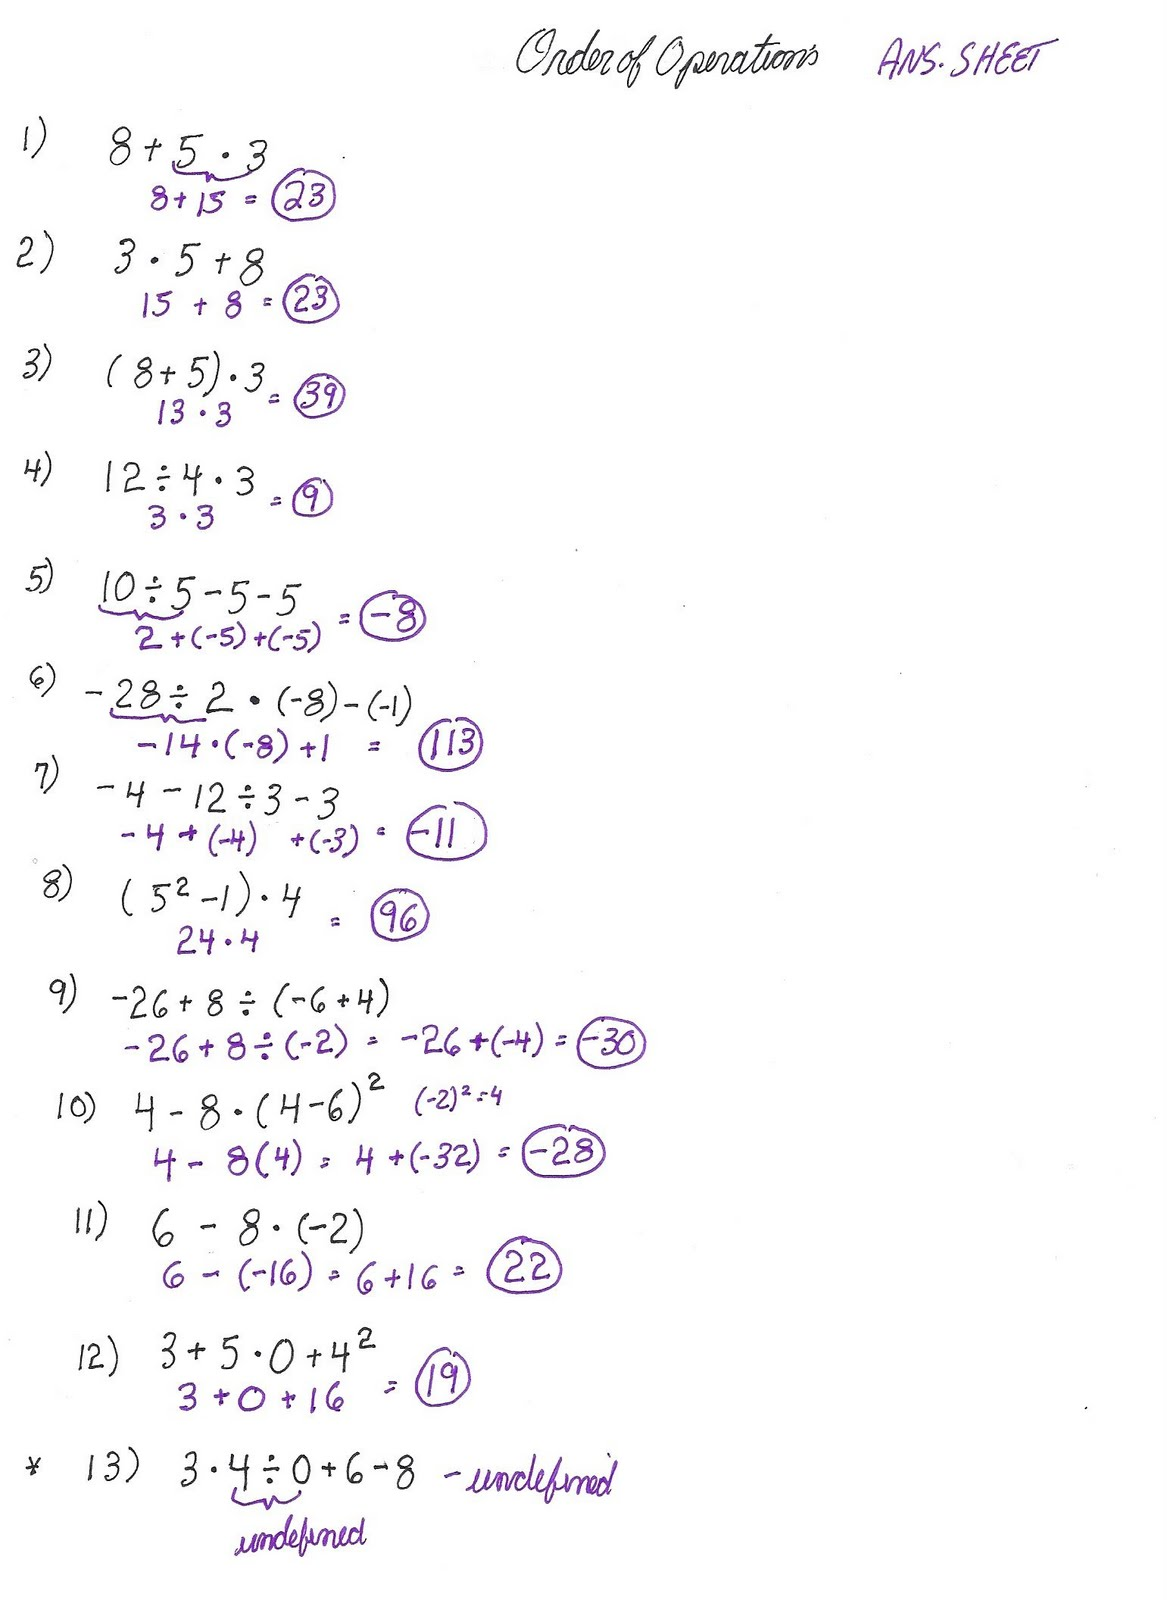 Cobb Adult Ed Math Order of Operations Worksheet Solutions – Math Order of Operations Worksheet